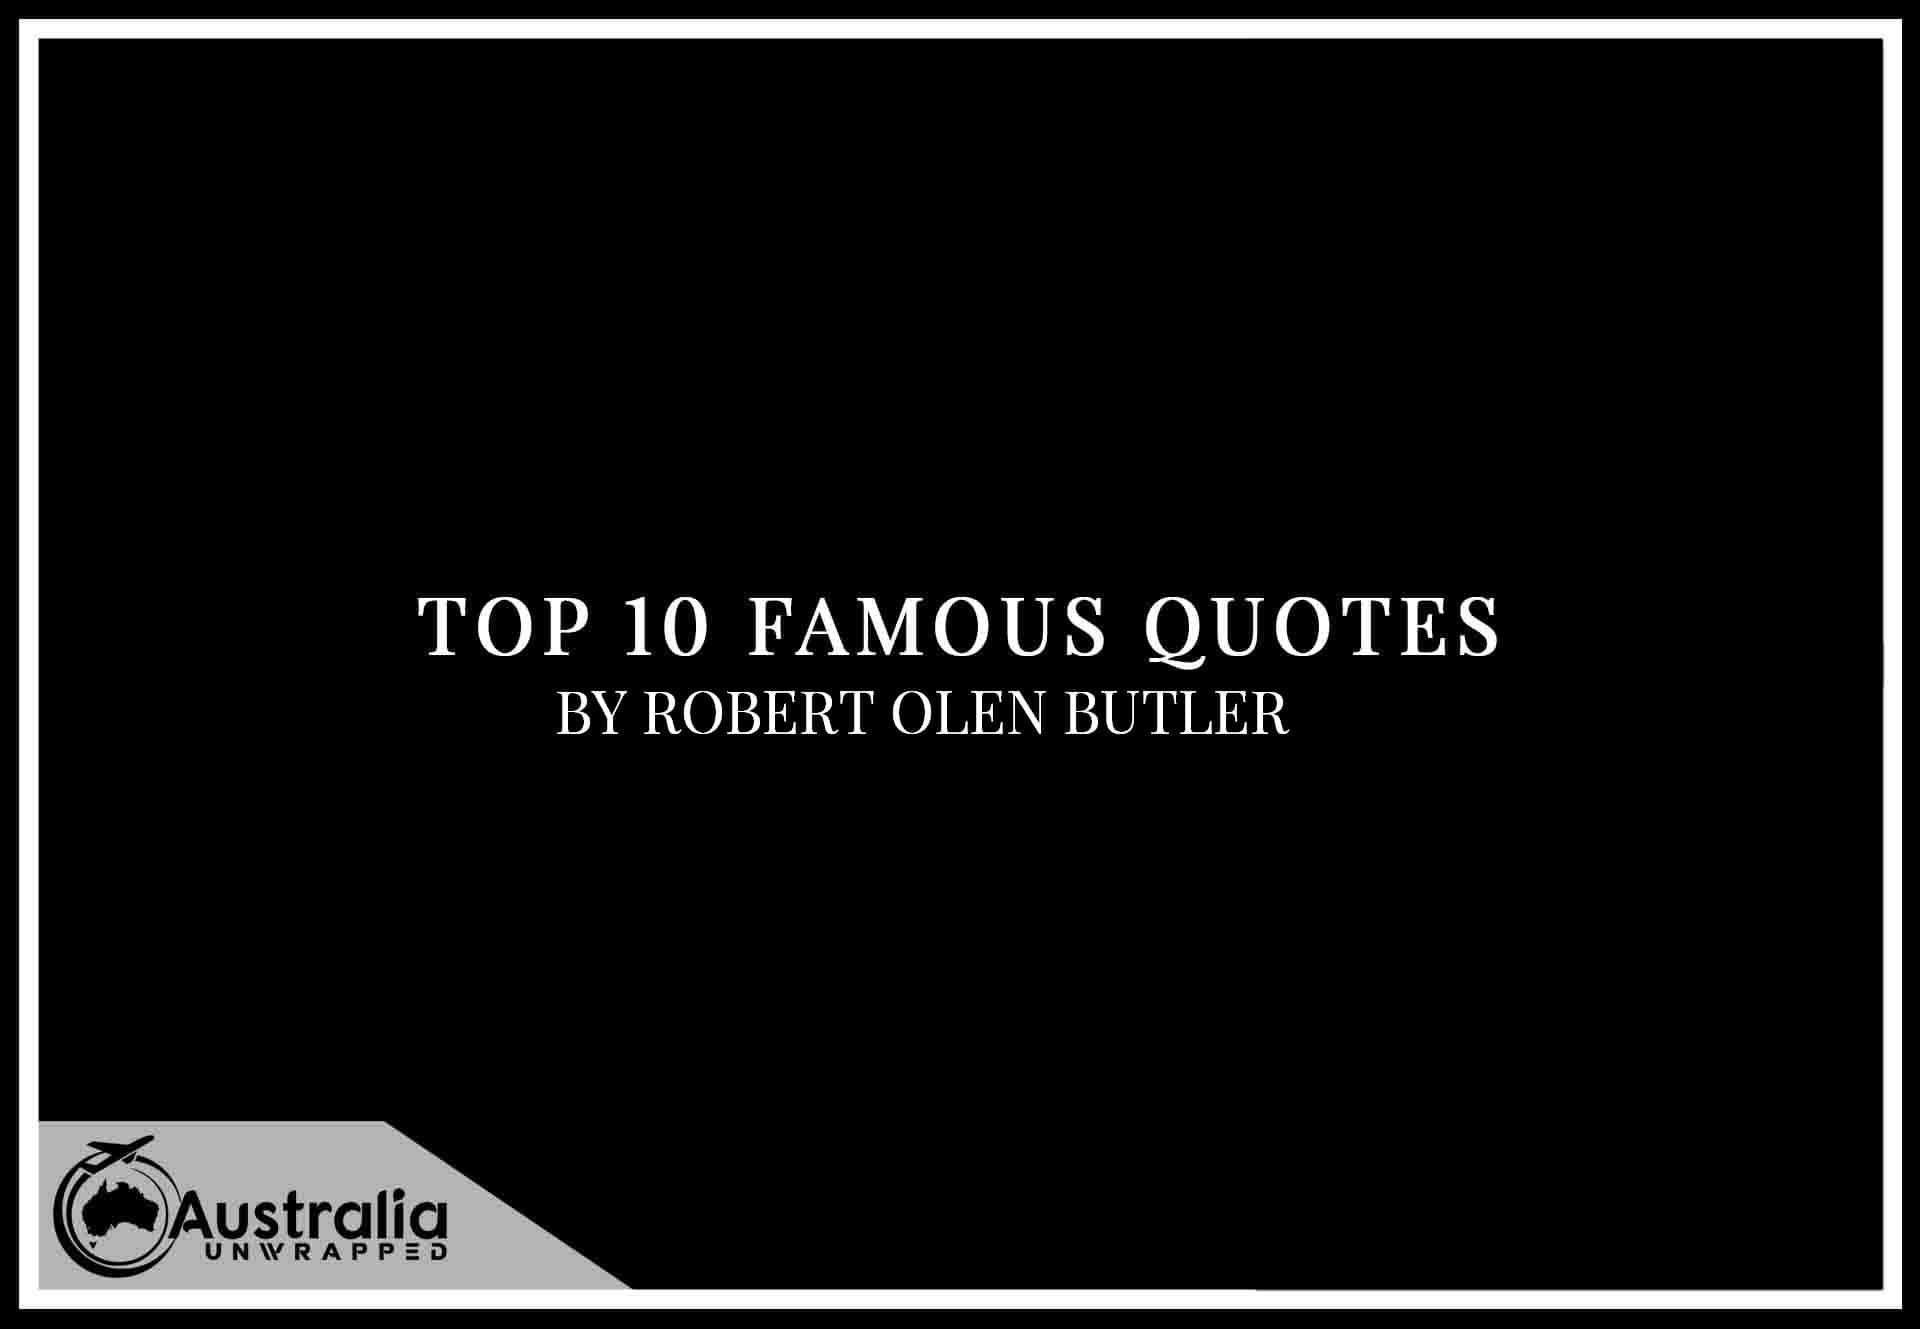 Robert Olen Butler's Top 10 Popular and Famous Quotes